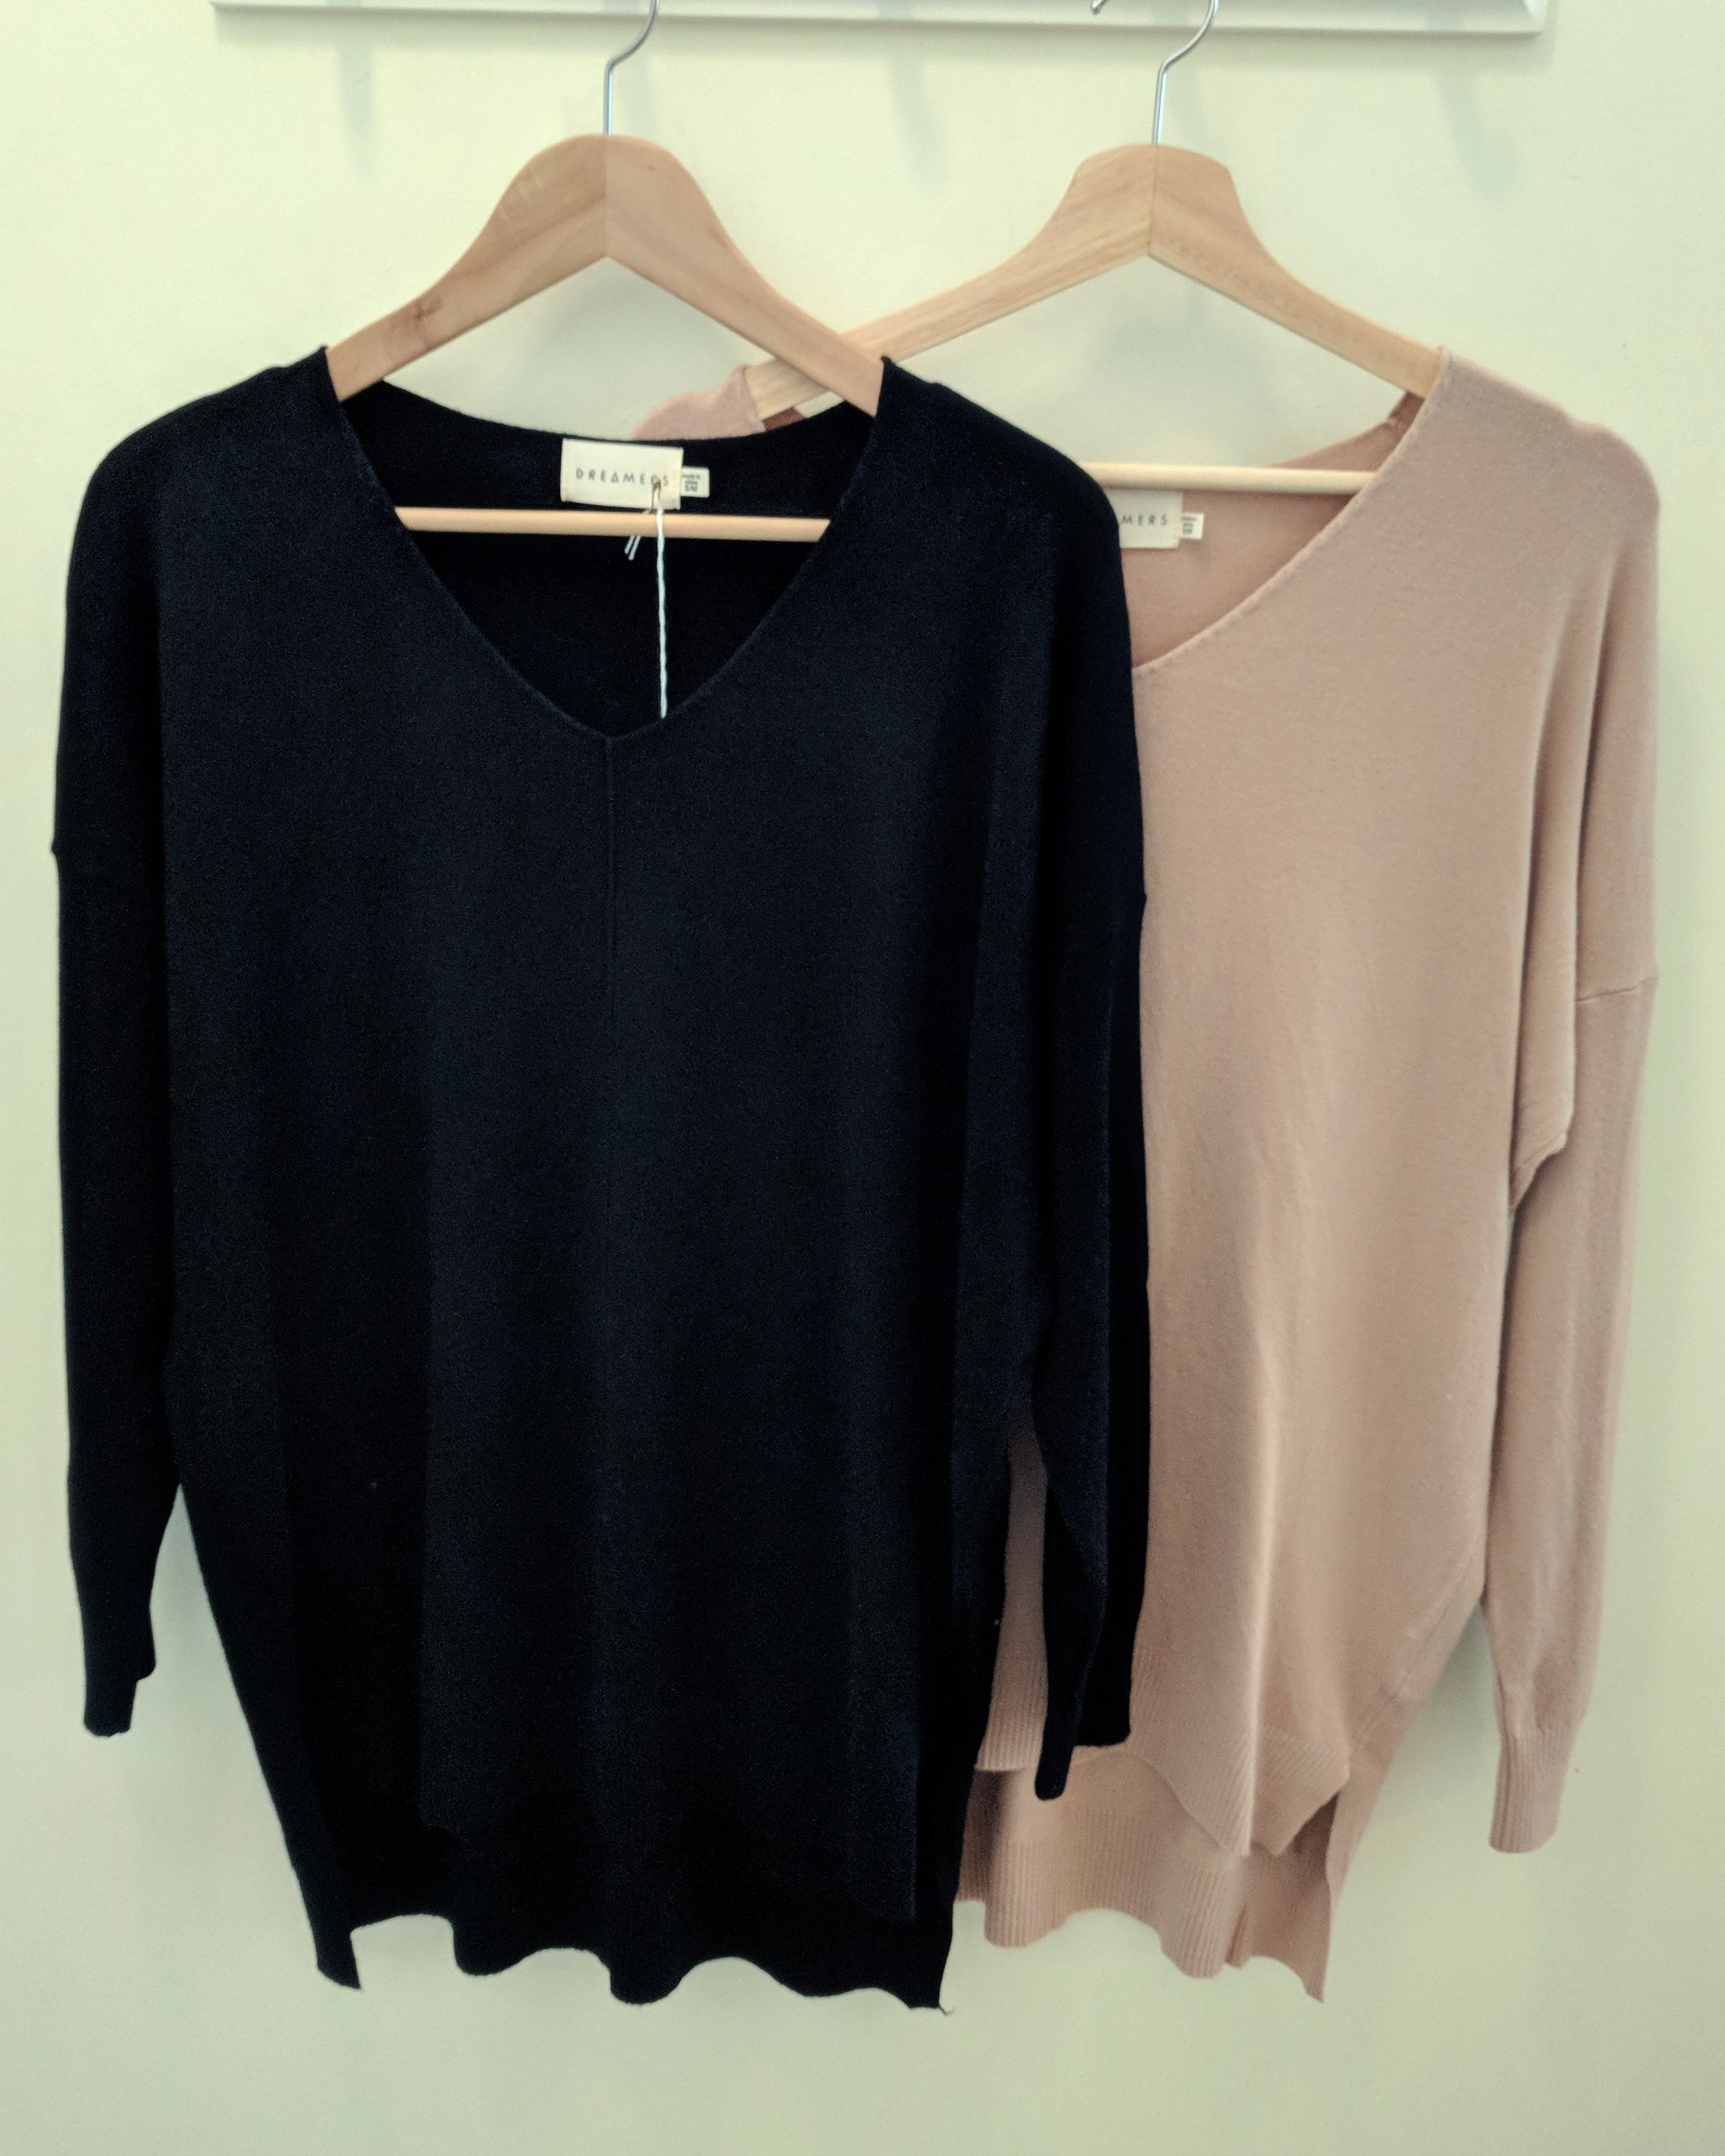 Black and Dusty Pink Dreamer Sweater $42